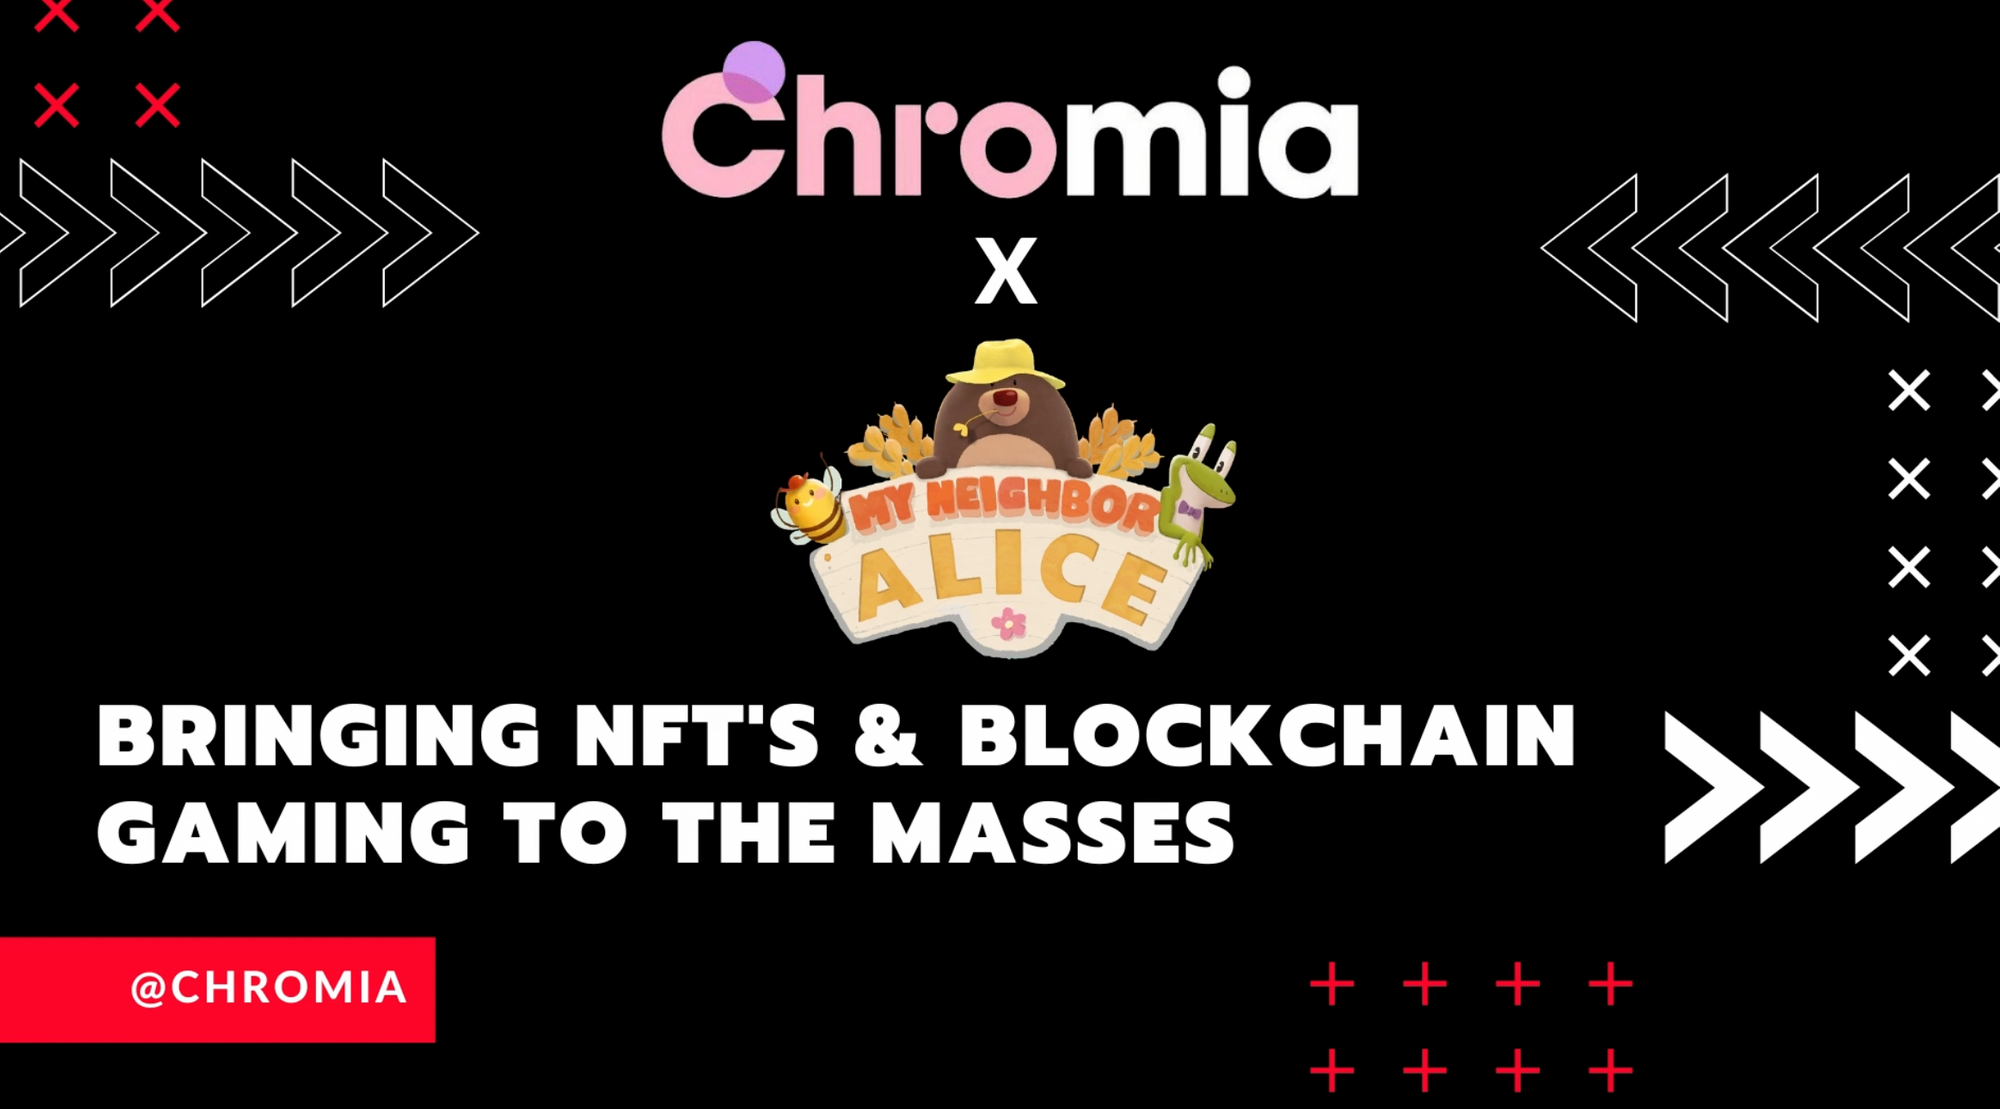 Chromia의 Relational Blockchain이 My Neighbor Alice (MNA) 에게 강력한 NFT 기능을 부여하다